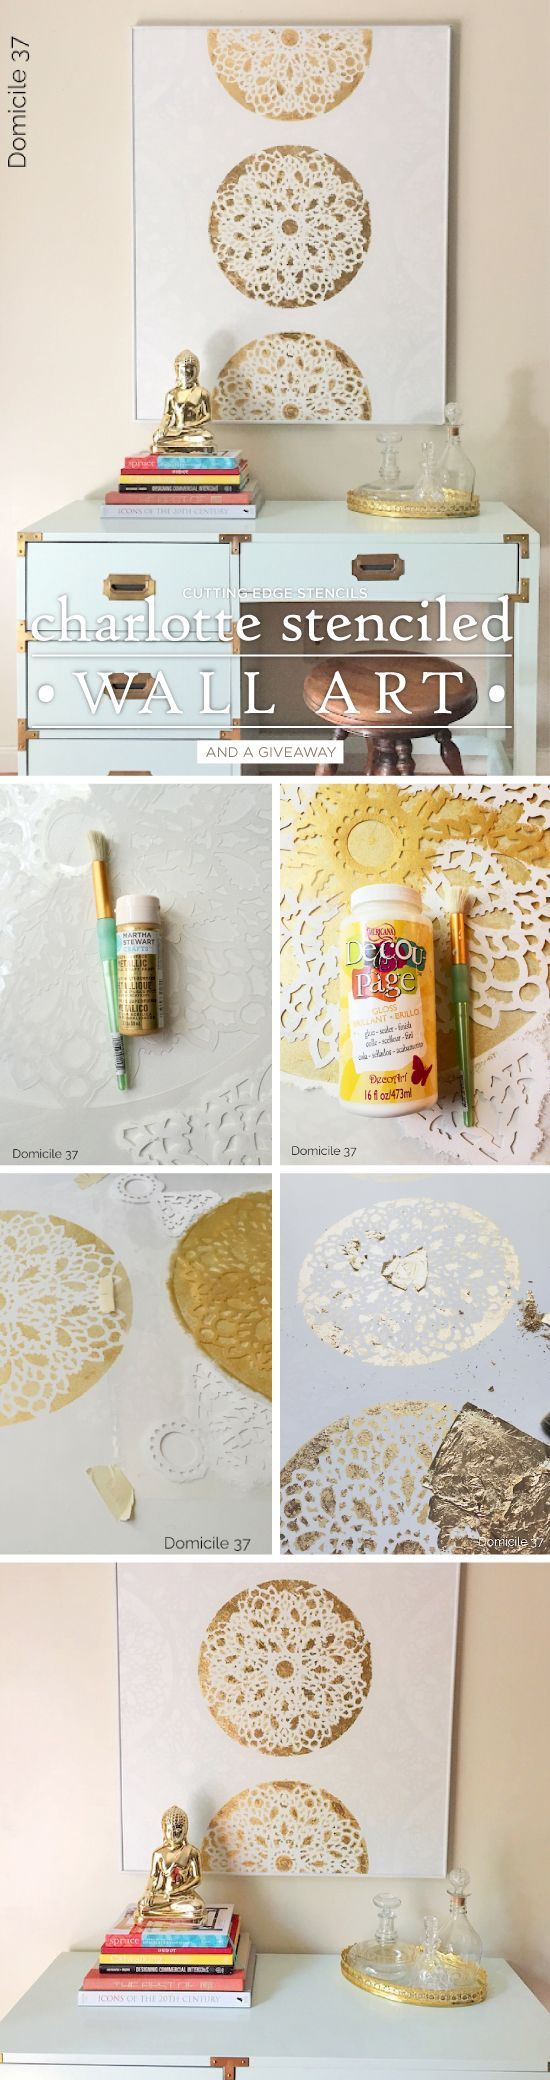 40 awesome wall art diy ideas tutorials for your home decoration 2017 stenciling wall art using a lace stencil solutioingenieria Images